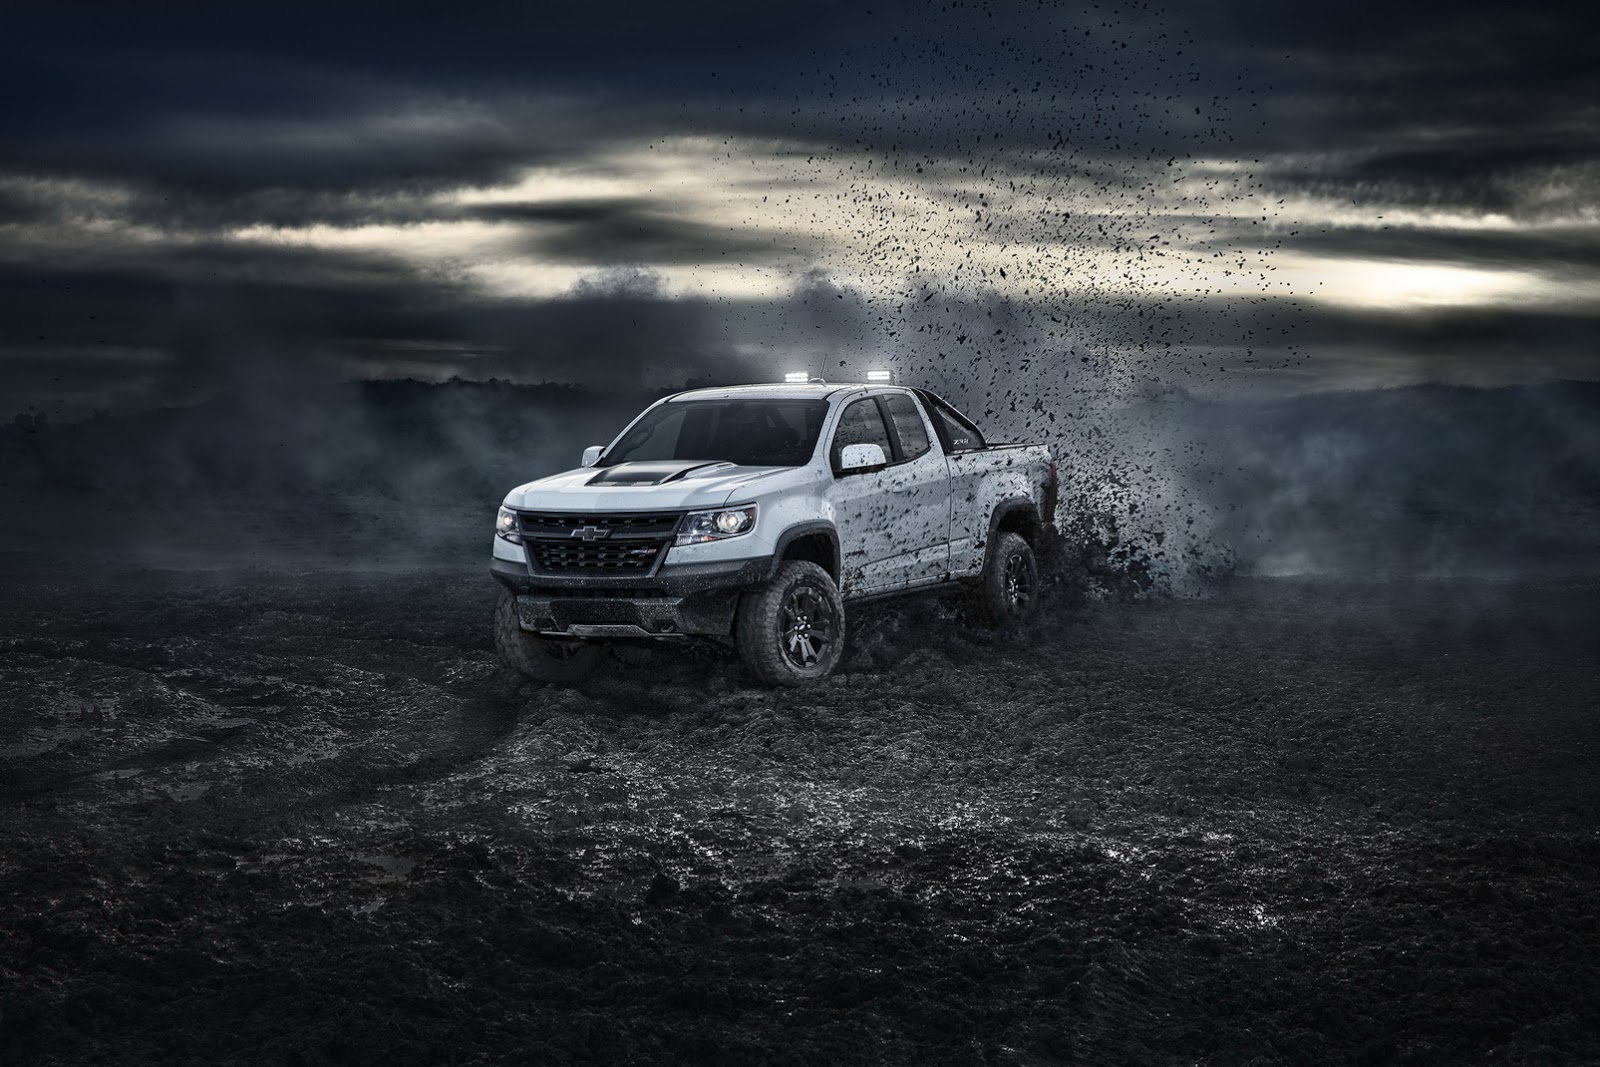 chevy-colorad-zr2-midnight-dusk-2